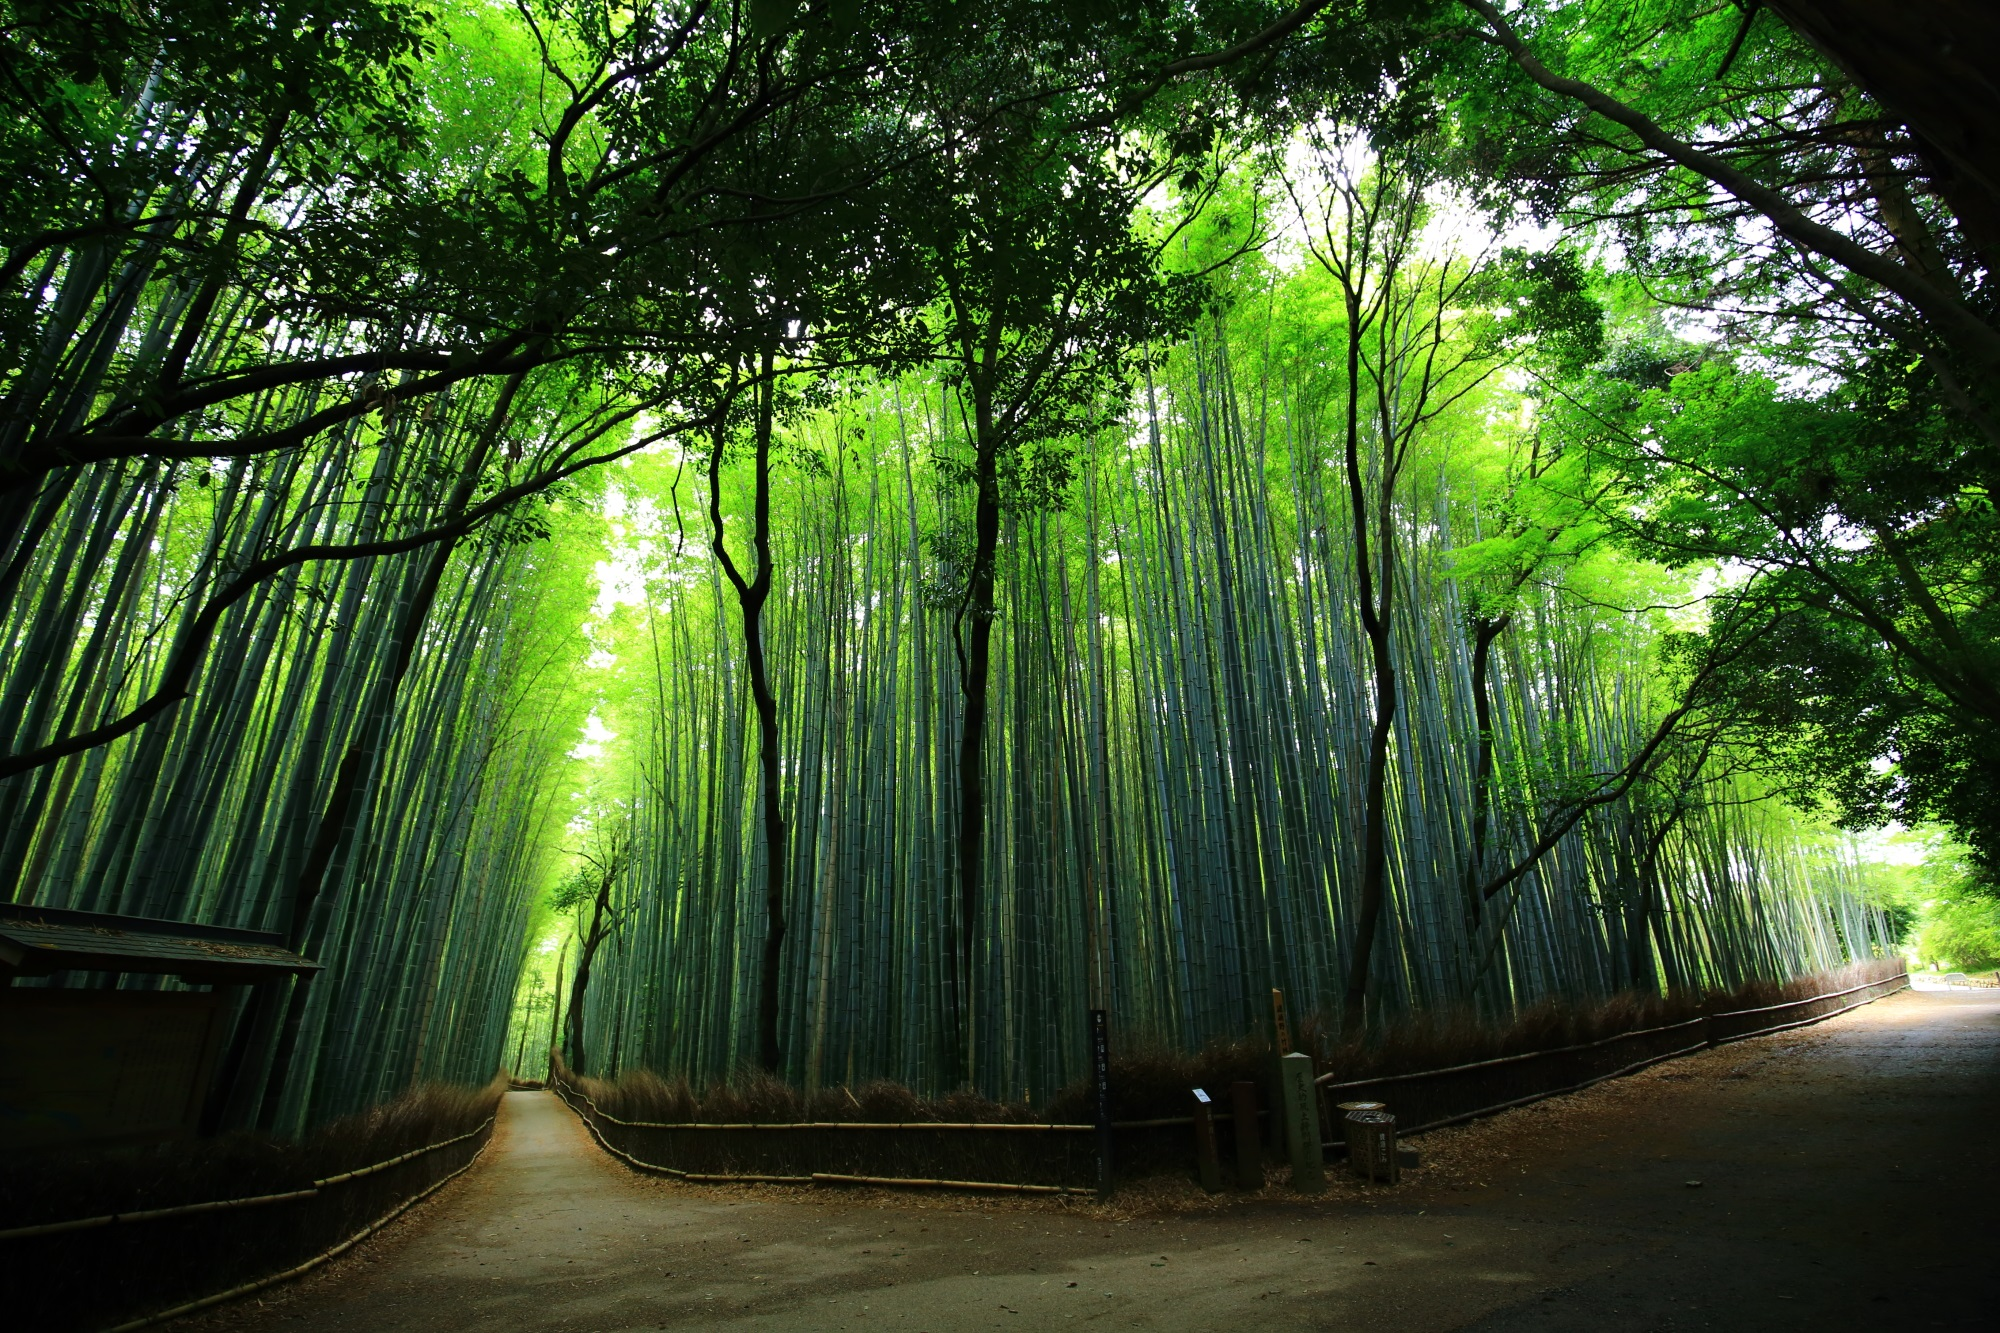 Road of bamboo forest inKyoto Japan